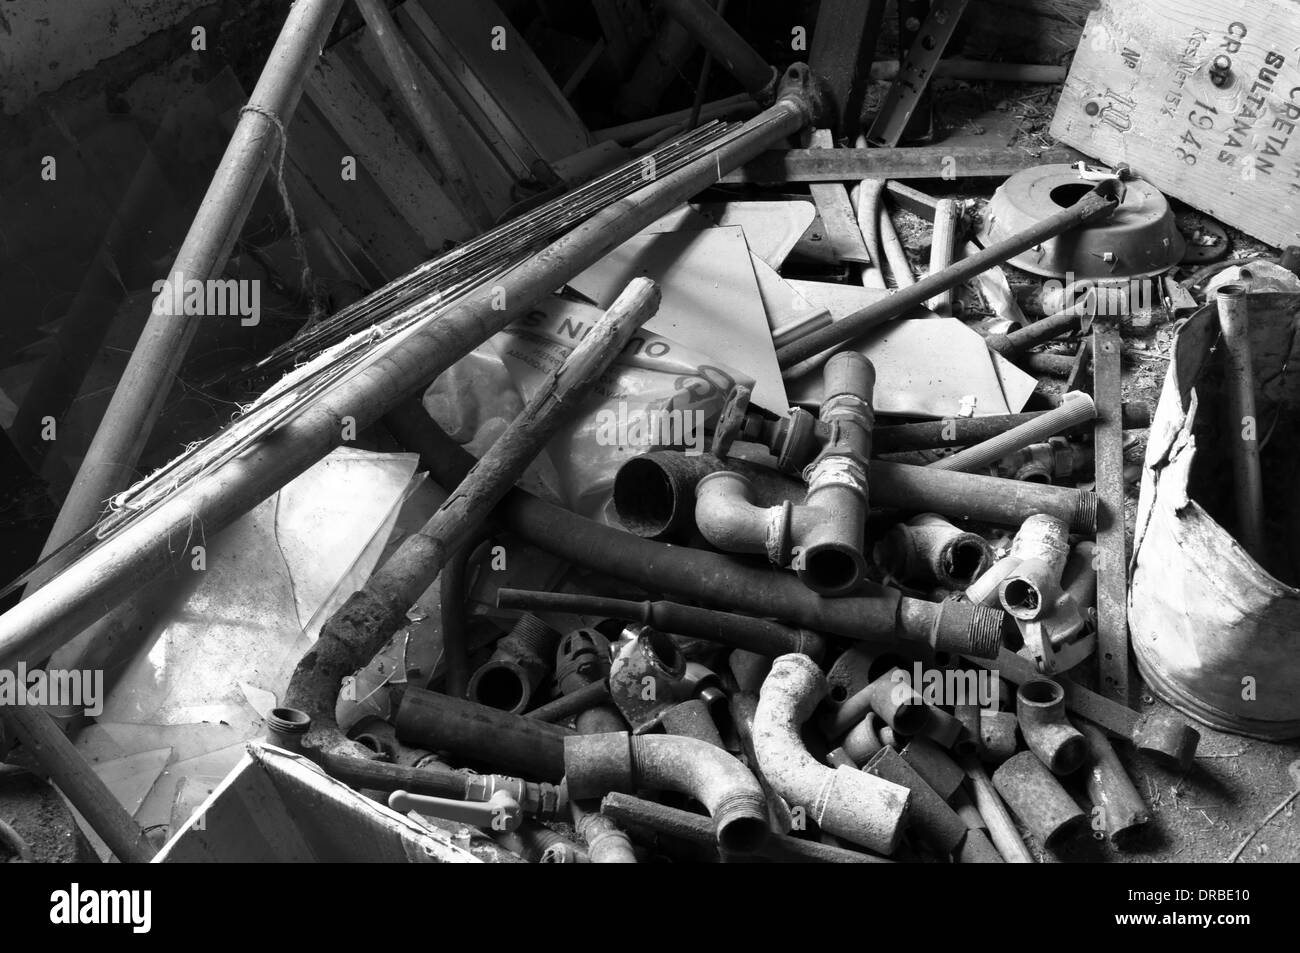 old pipes and fittings from an old cow shed in Finland. - Stock Image